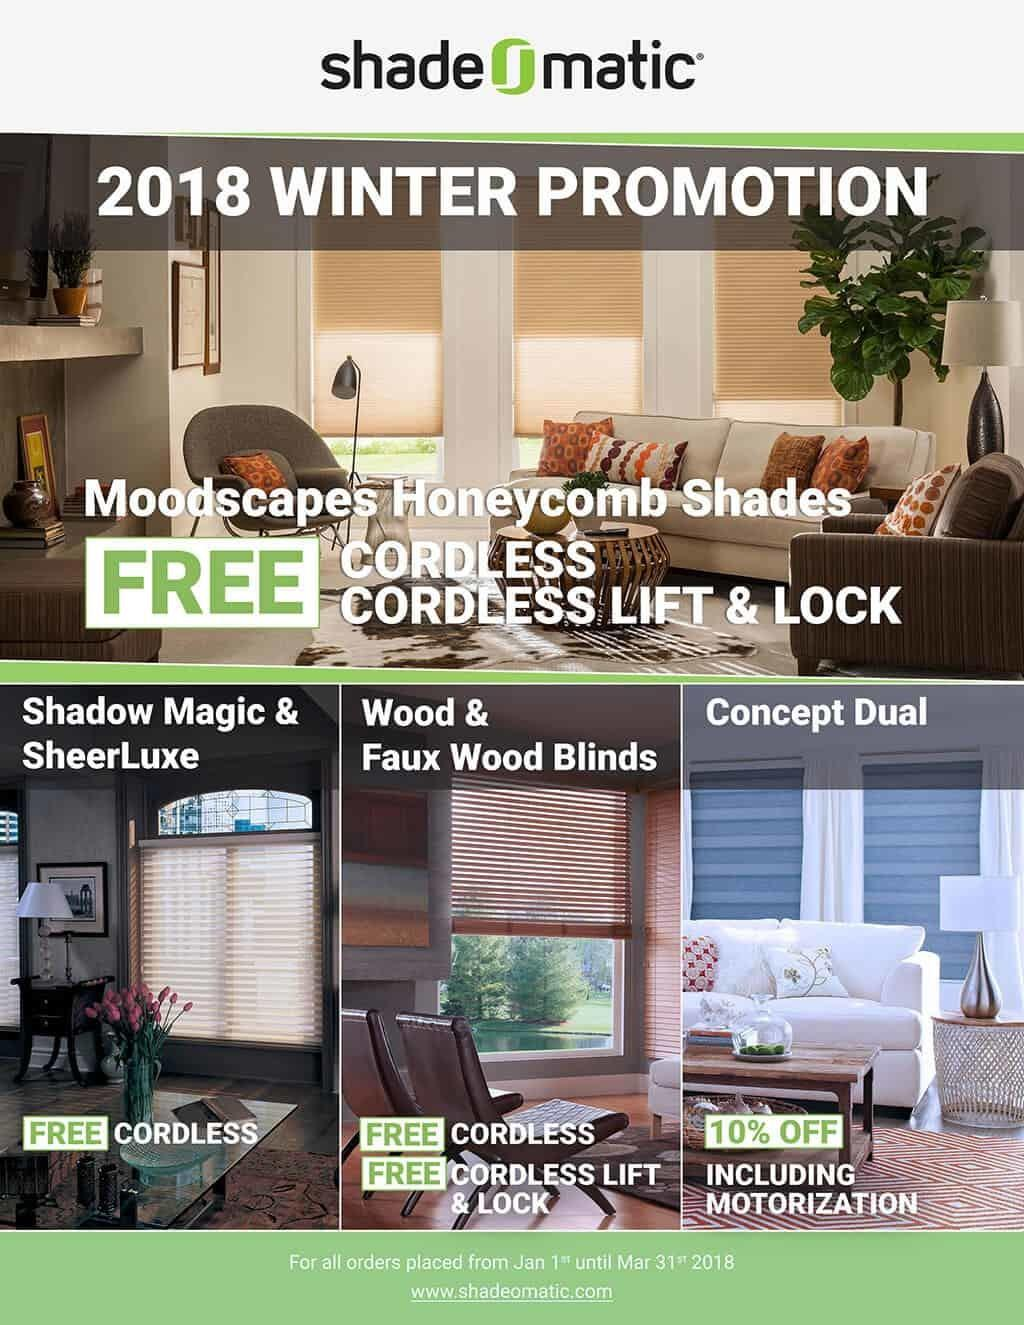 Shade Matic 2018 Winter Promotion Newcastle Home Decor